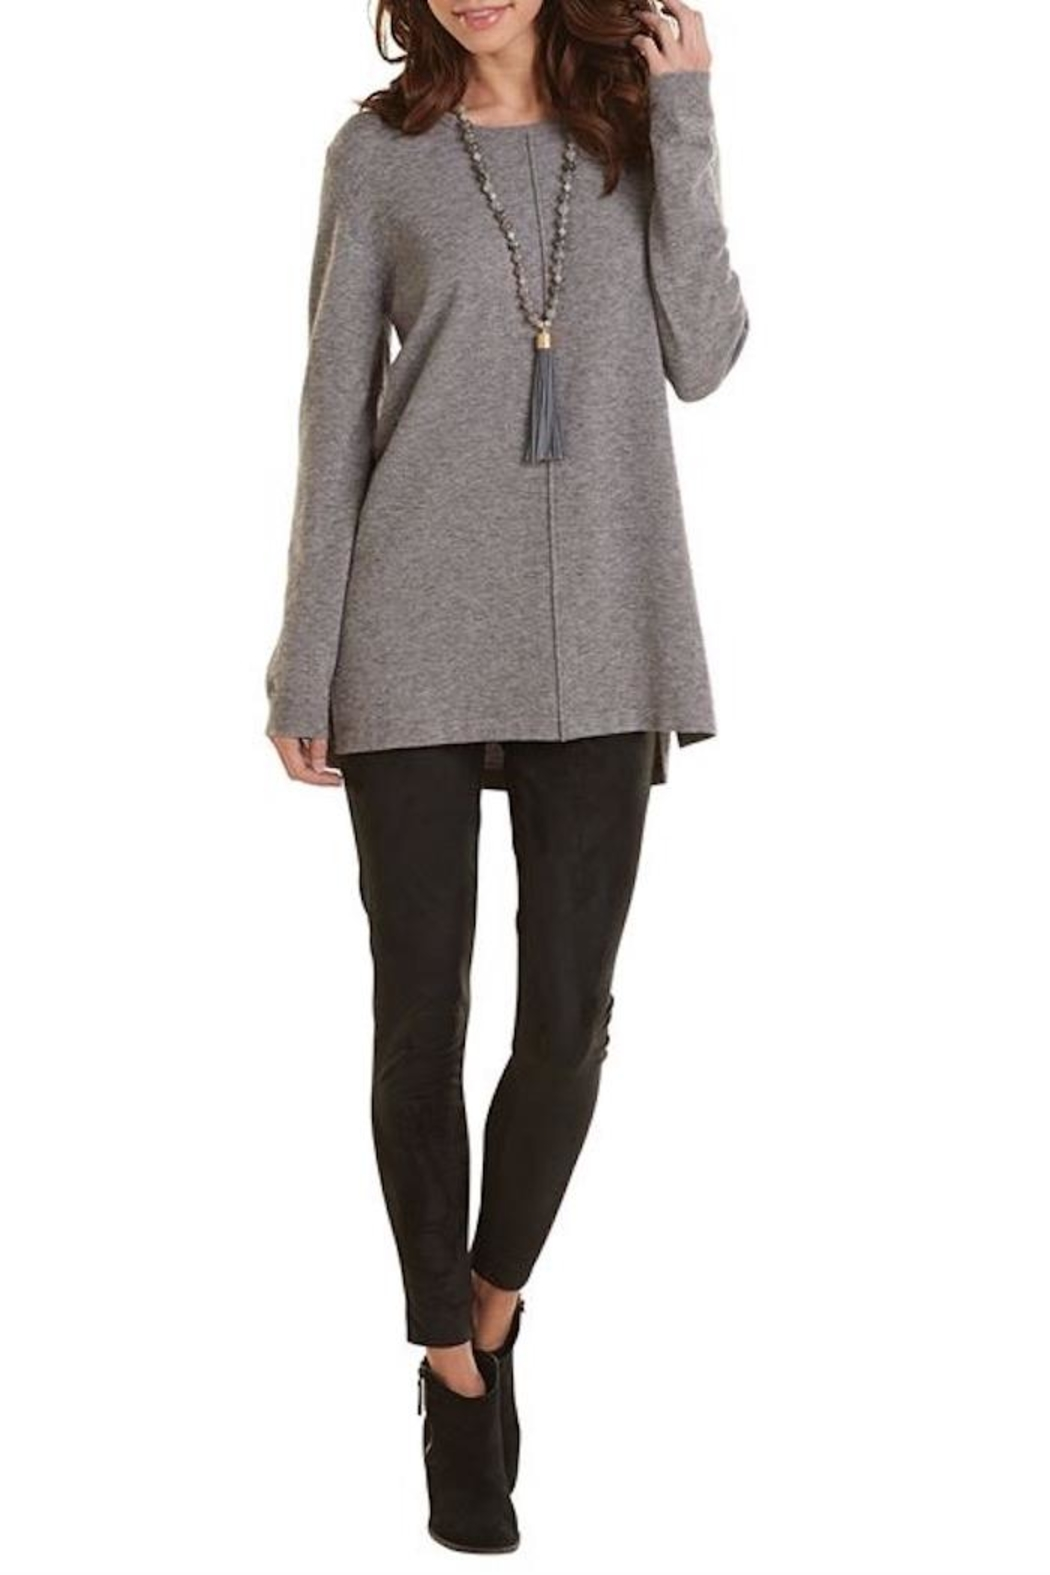 Mud Pie Camilla Sweater Tunic - Front Cropped Image